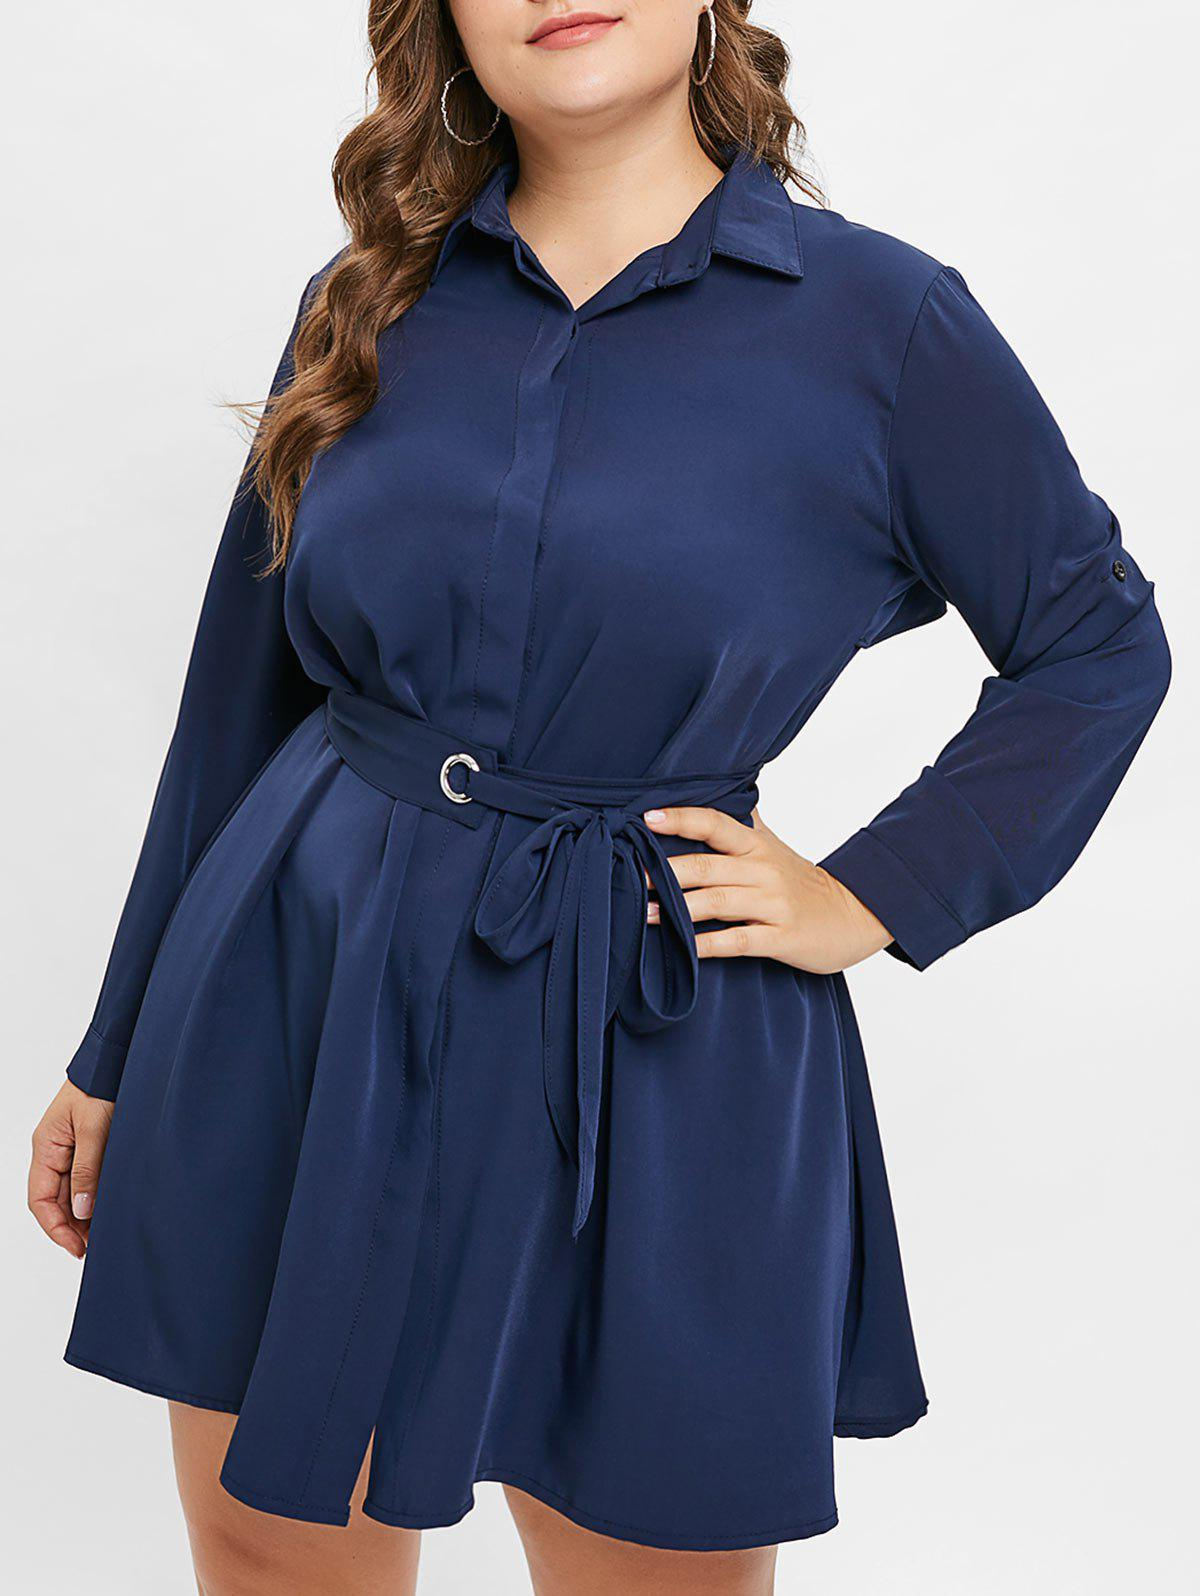 3949cbc4225 Outfit Plus Size Long Sleeves Button Up Shirt Dress